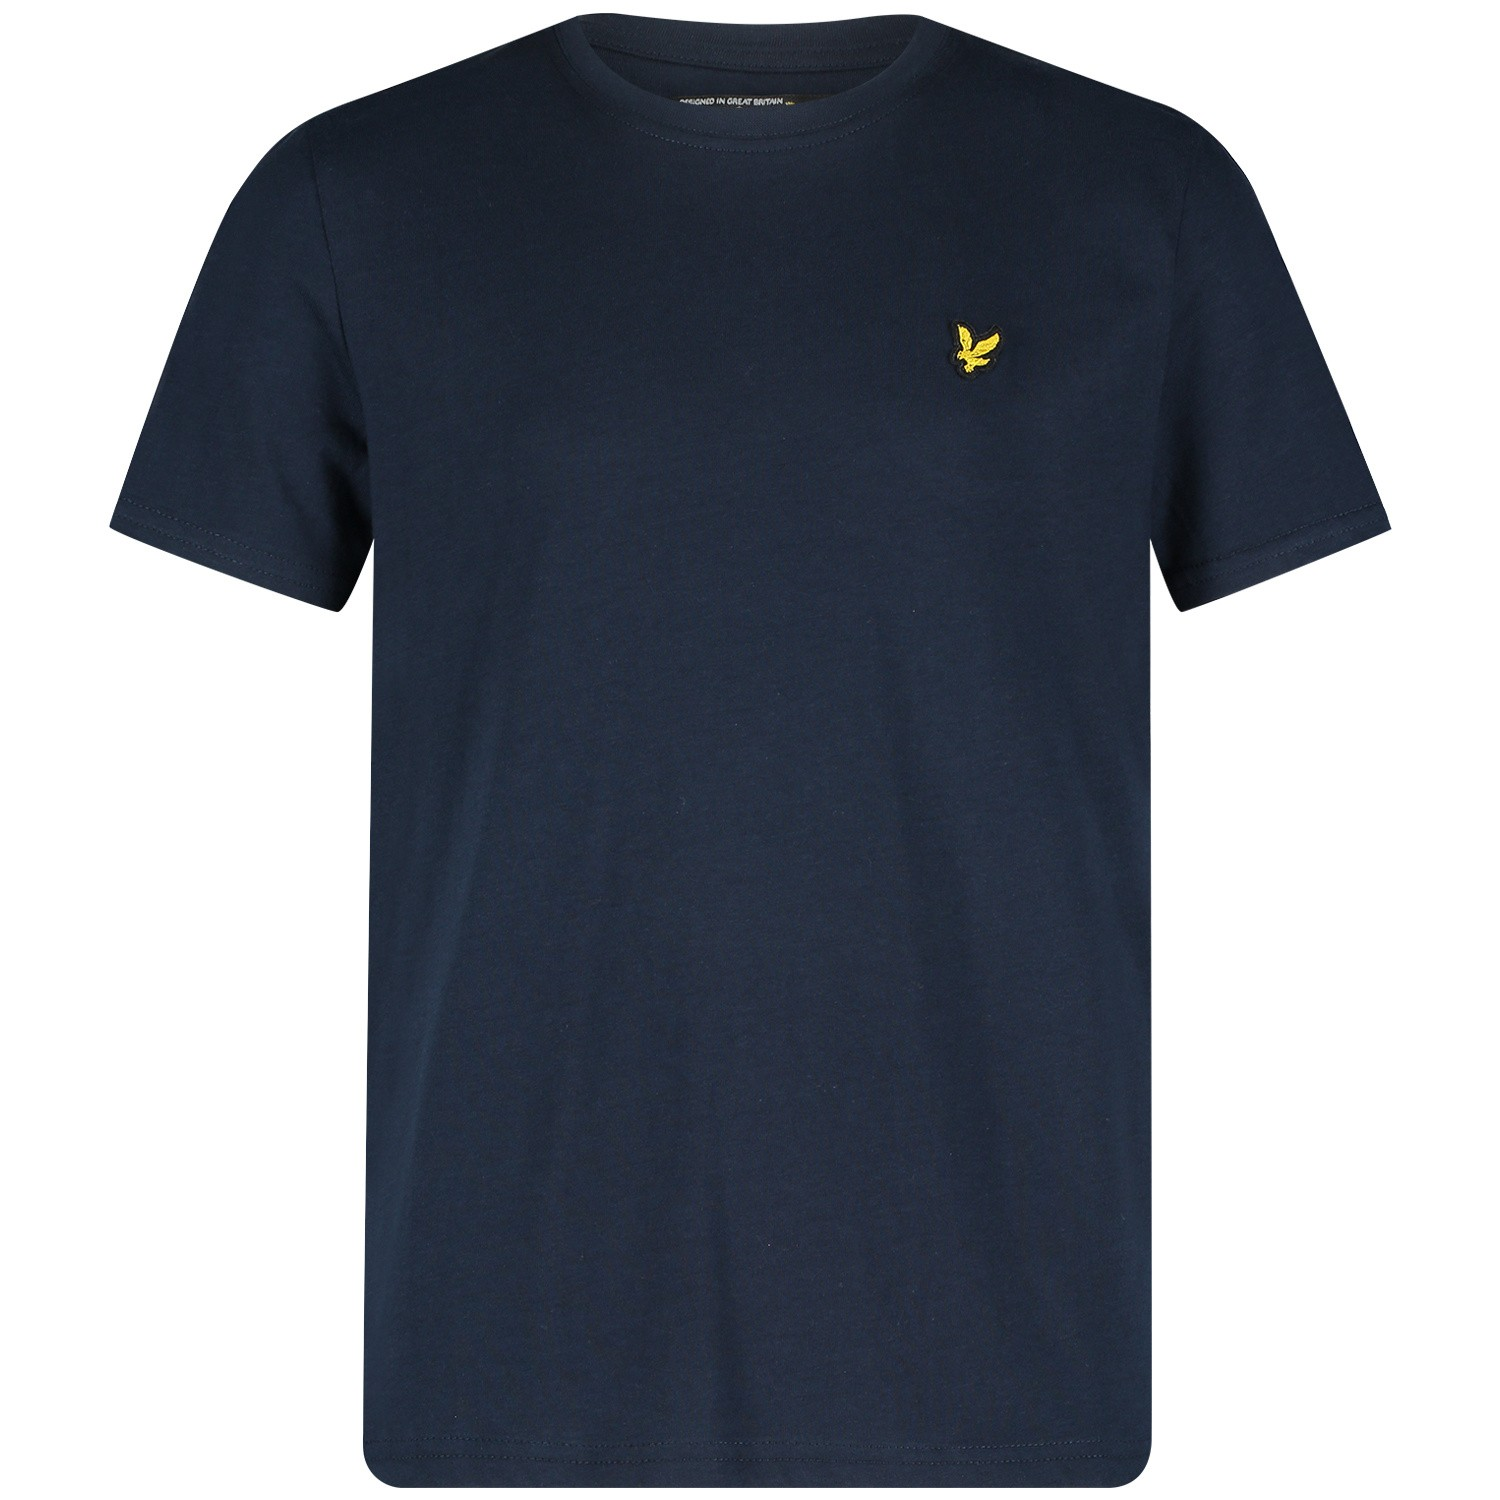 Picture of Lyle & Scott LSC0003 kids t-shirt navy